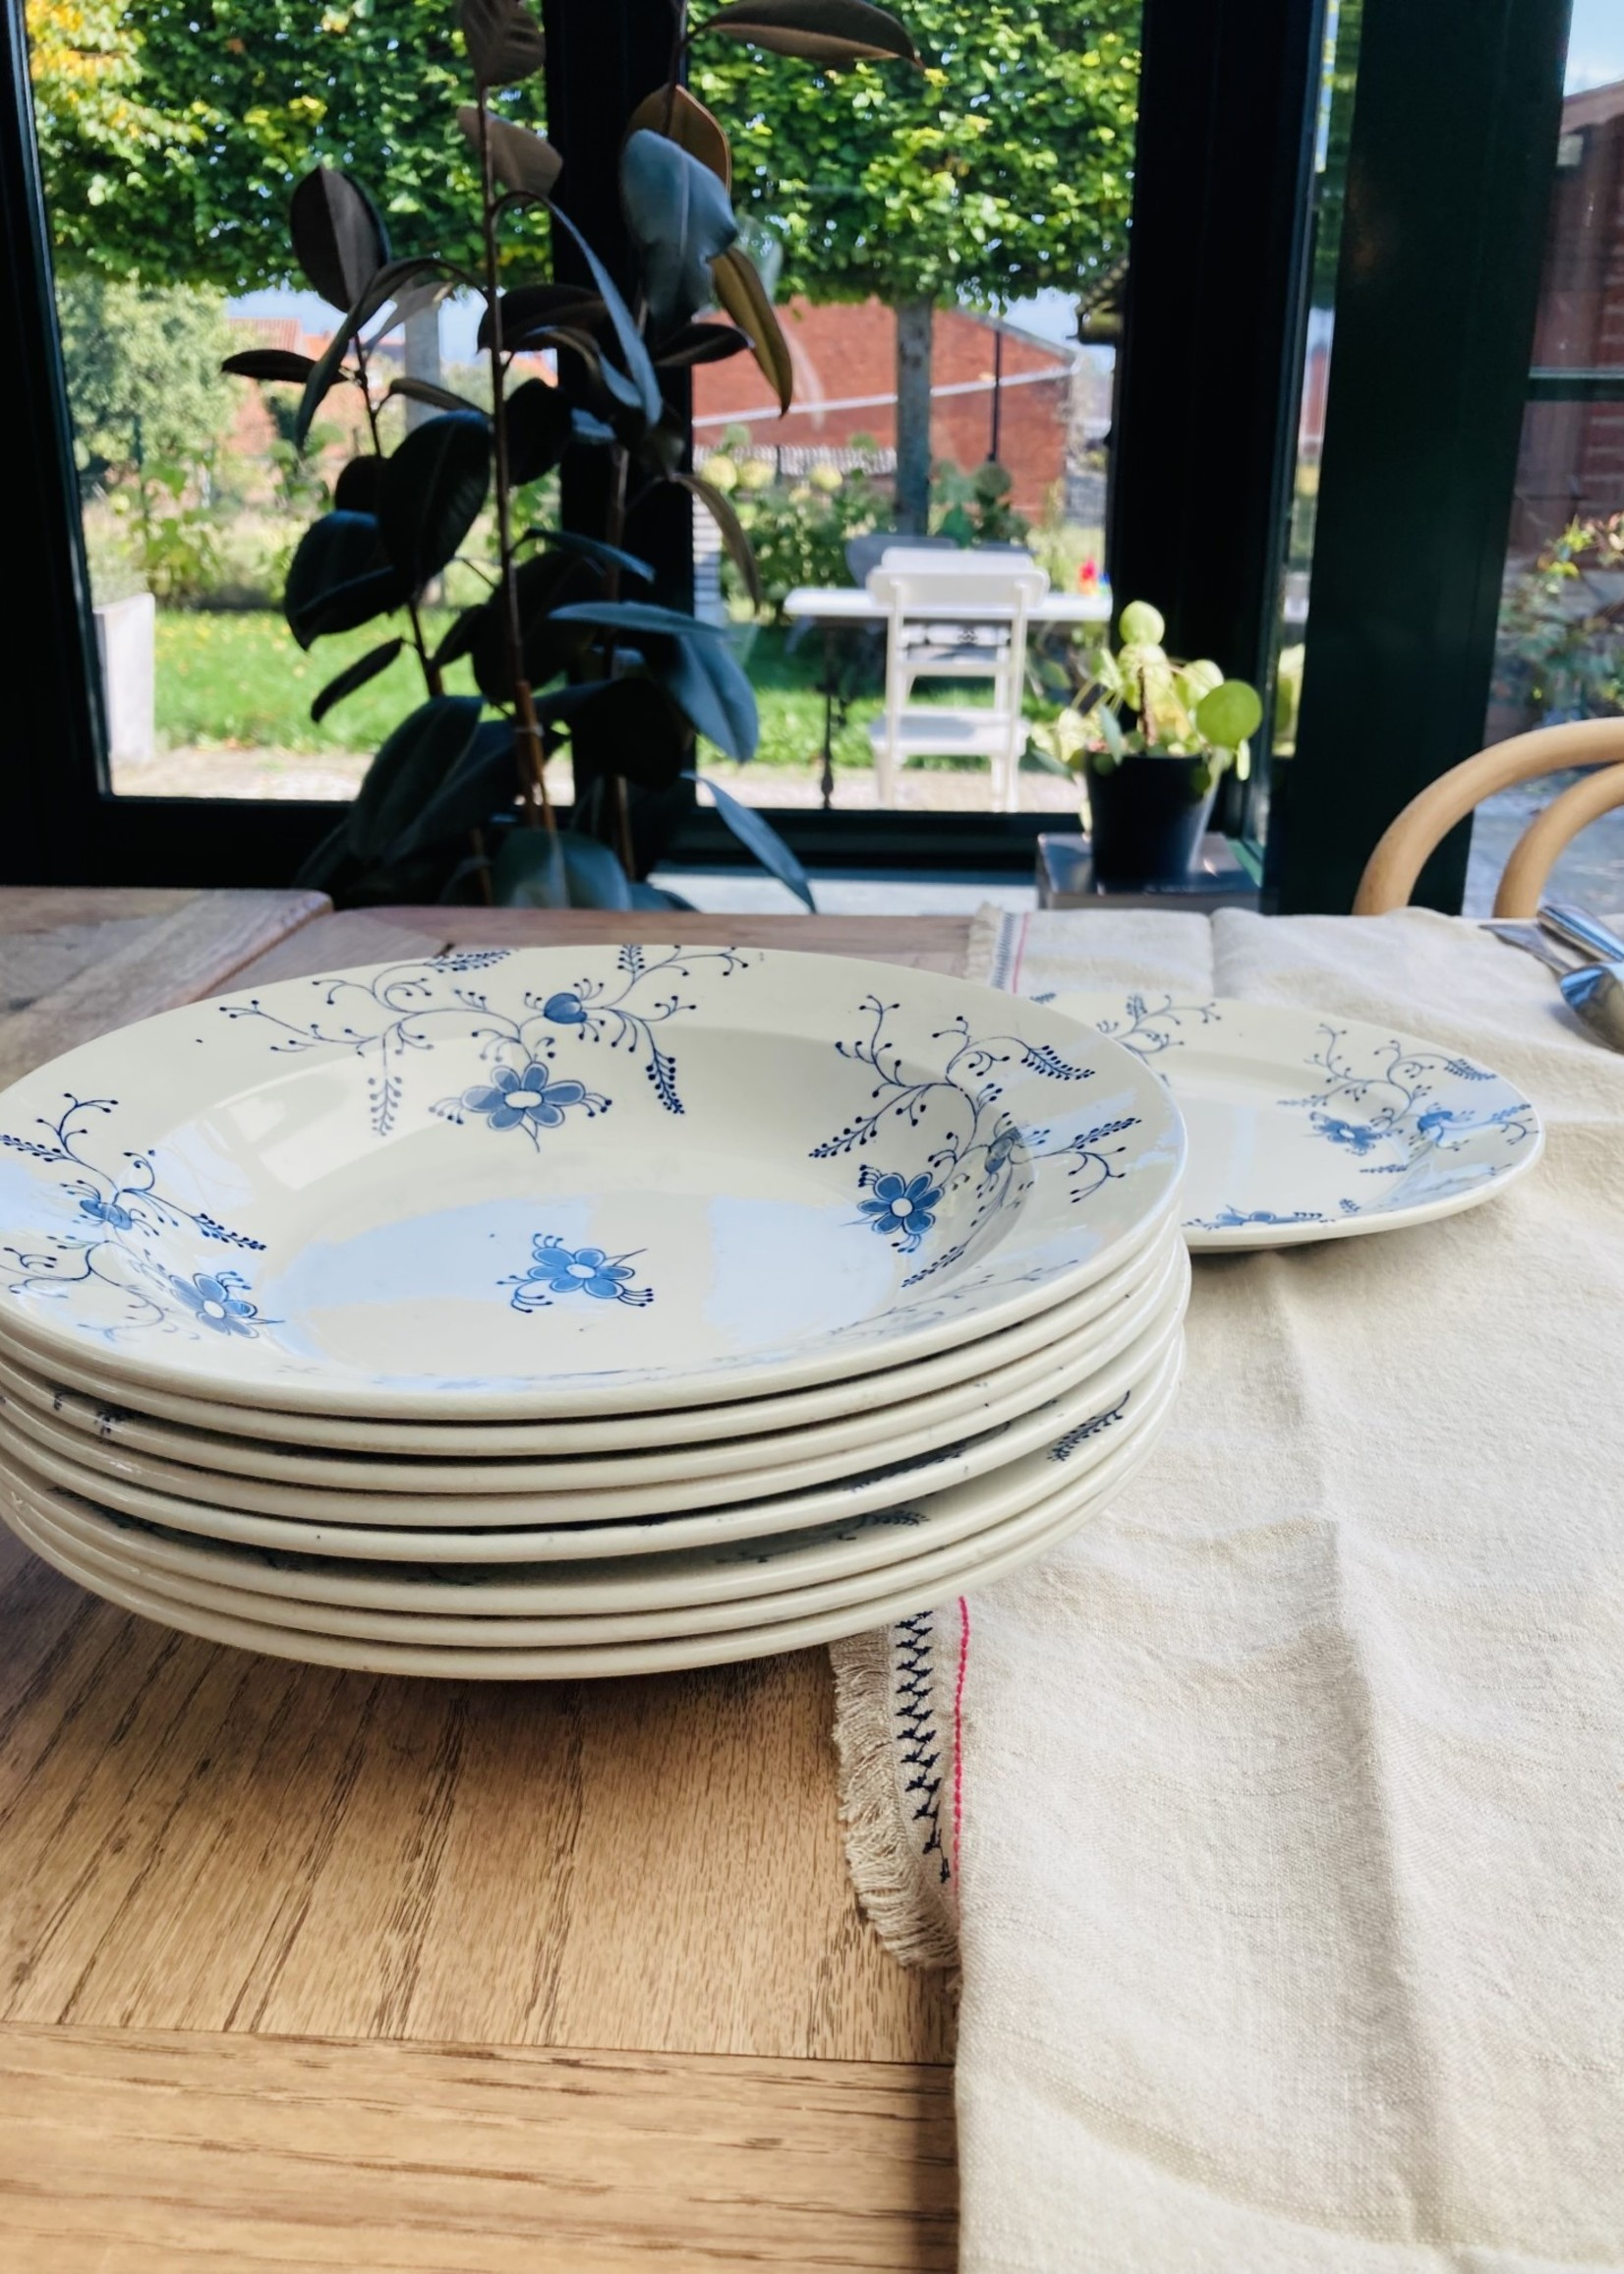 Deep plate from Nimy with blue decor